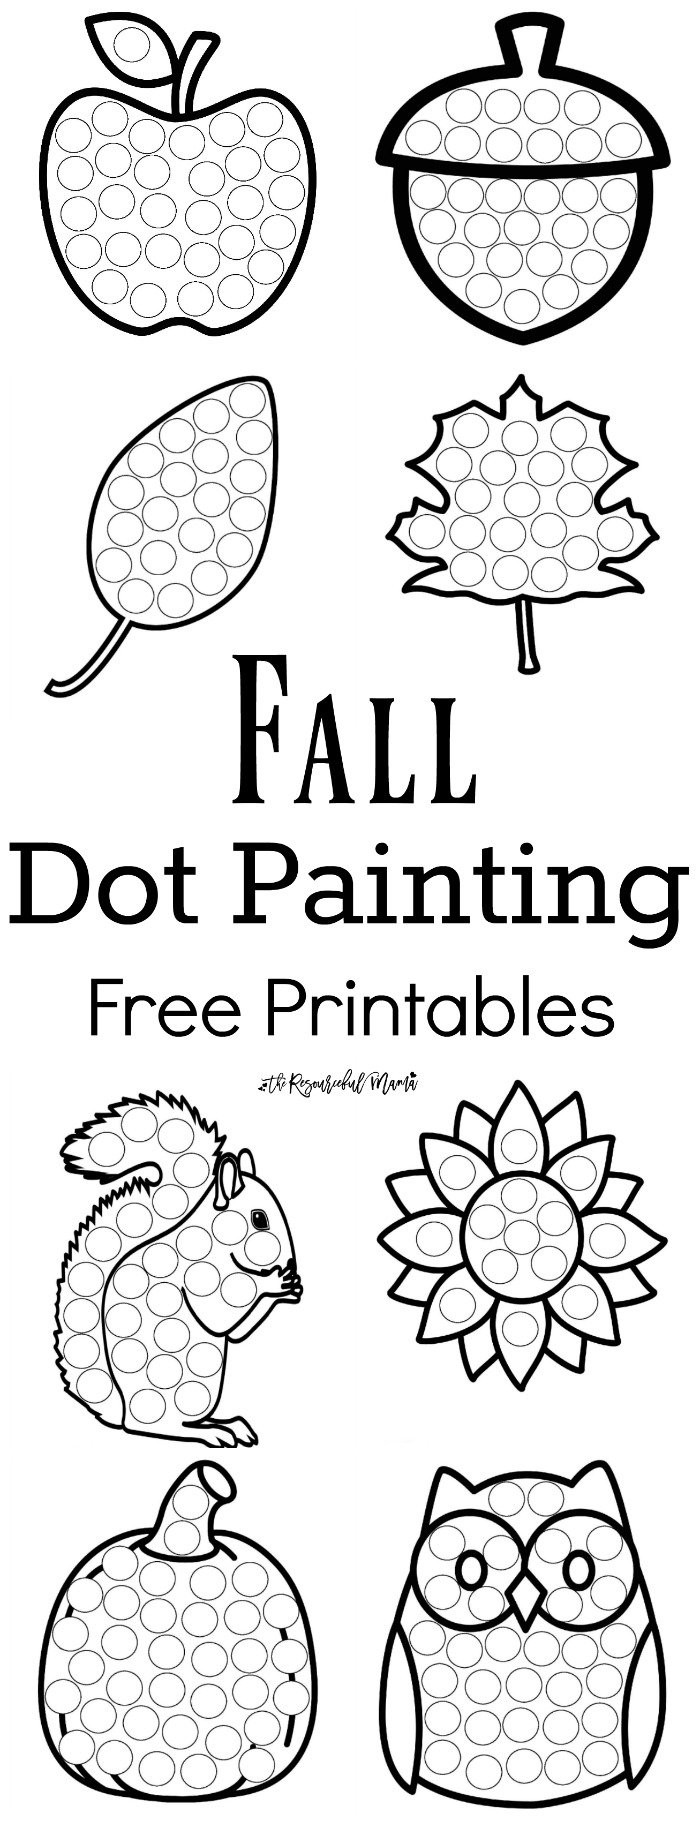 Dot to Dot Art Printables Fall Dot Painting Free Printables the Resourceful Mama